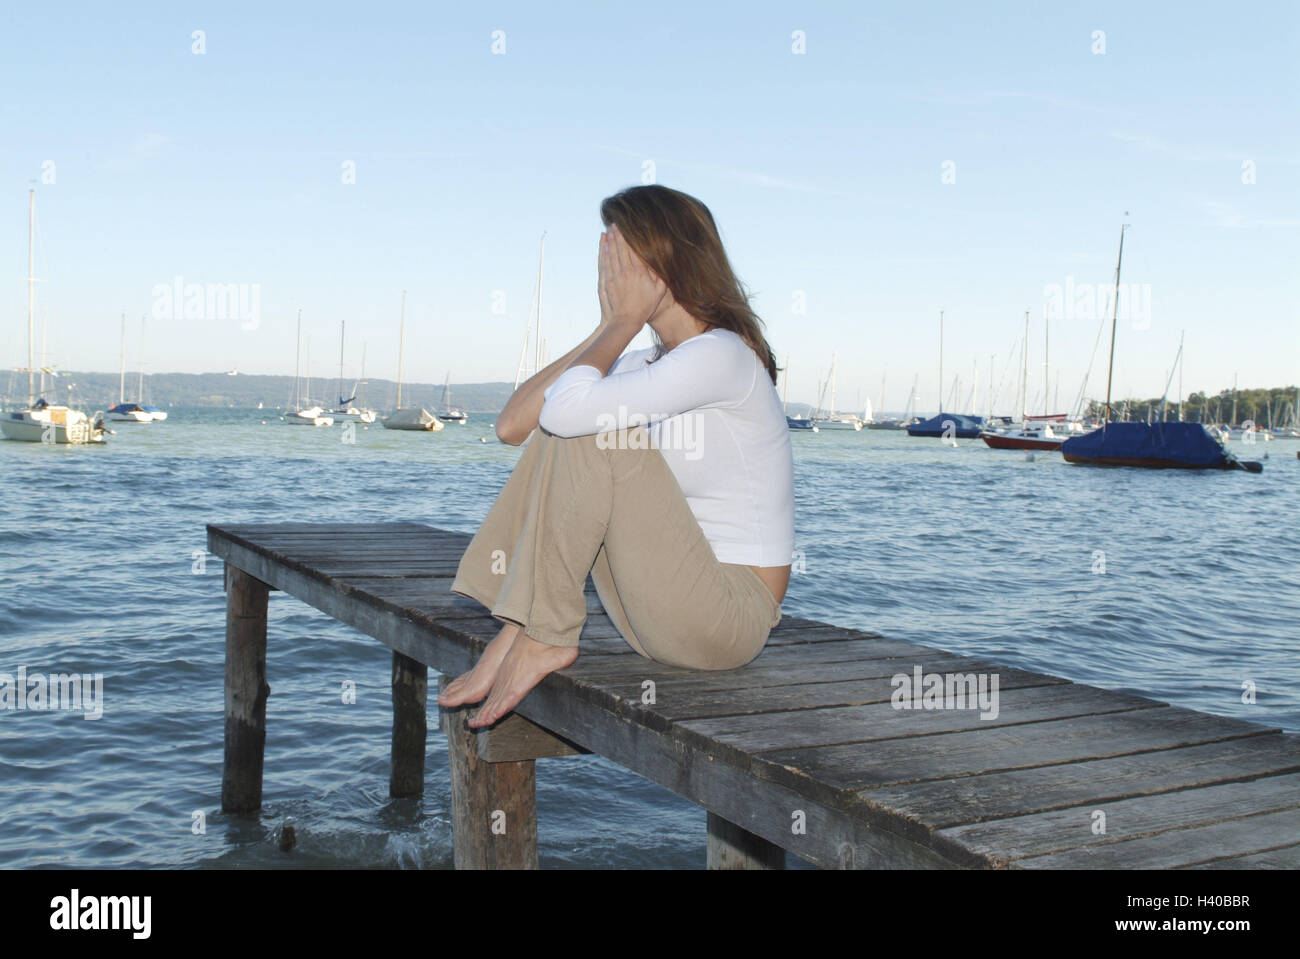 Lake, wooden jetty, woman, young, sadly, look, hands, hide, there sit, side view, bridge, 28 years, leisure time, - Stock Image